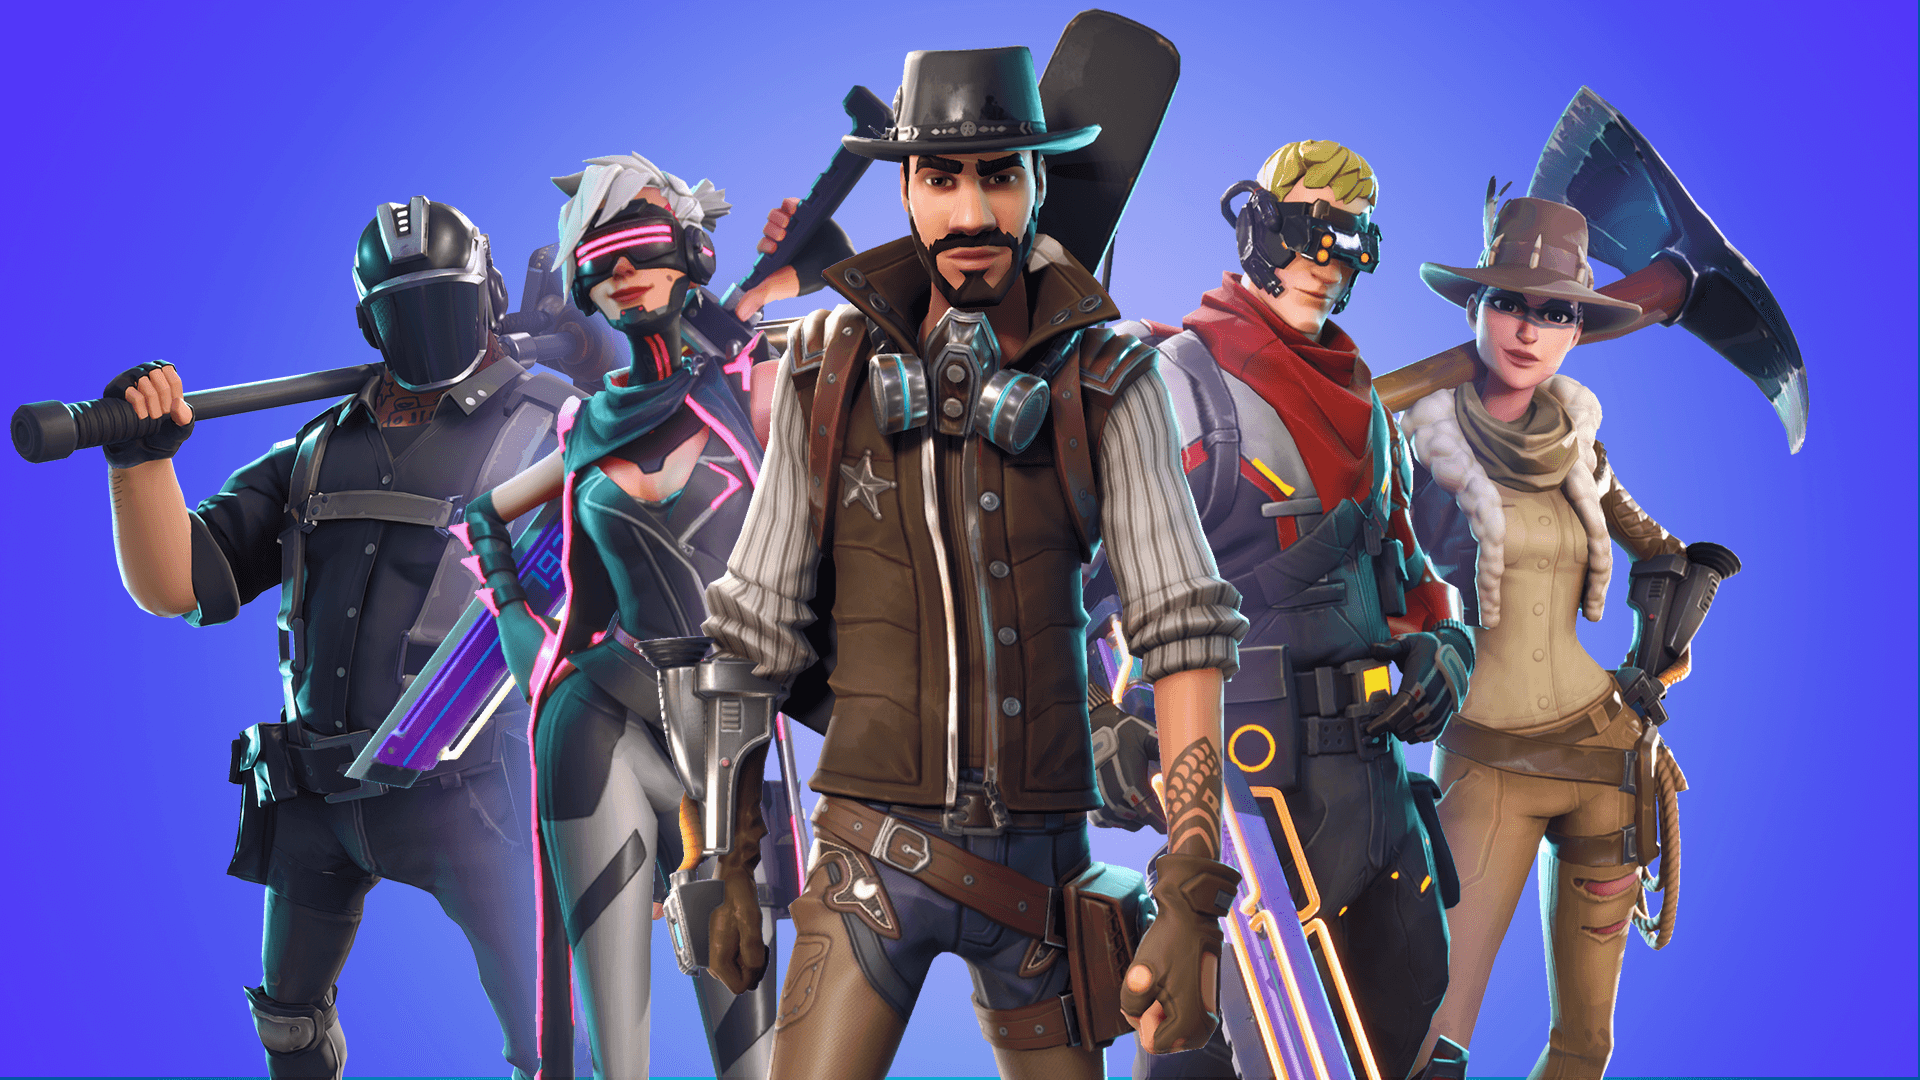 Save The World Locker Blog 1 Christopher nolan's movies play inside fortnite while his latest film is delayed. save the world locker blog 1